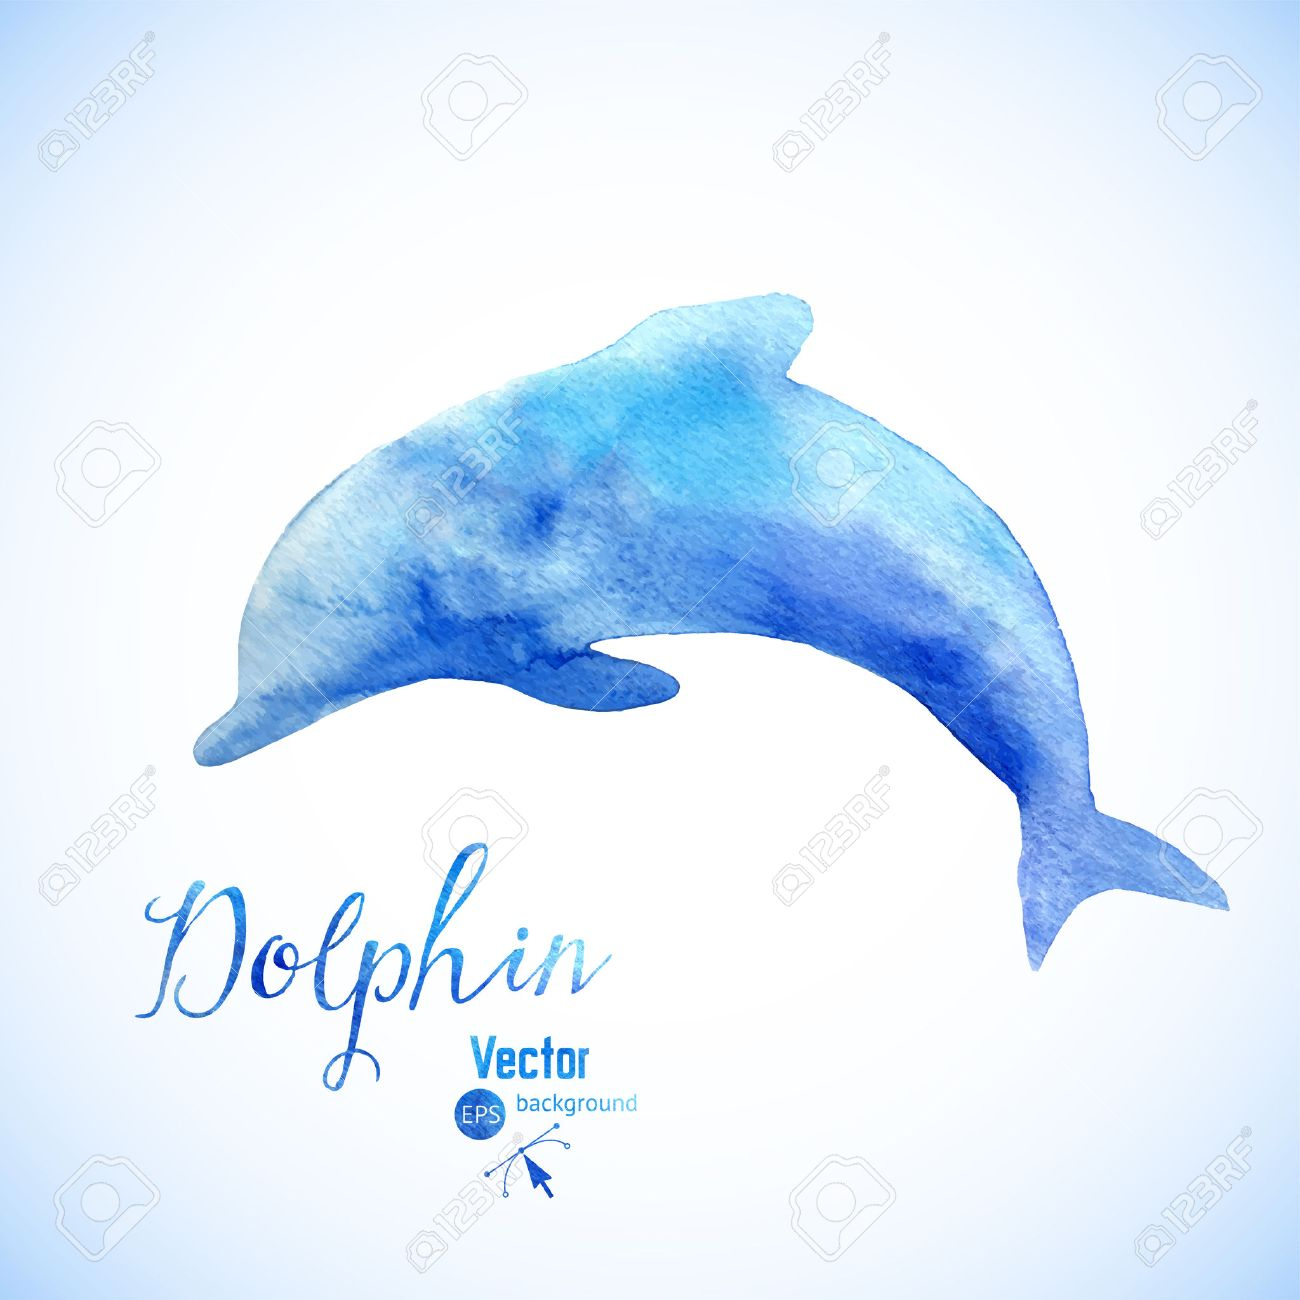 a3326f07145 Vector - Watercolor dolphin background symbel. Jumping blue dolphin  watercolor painted.